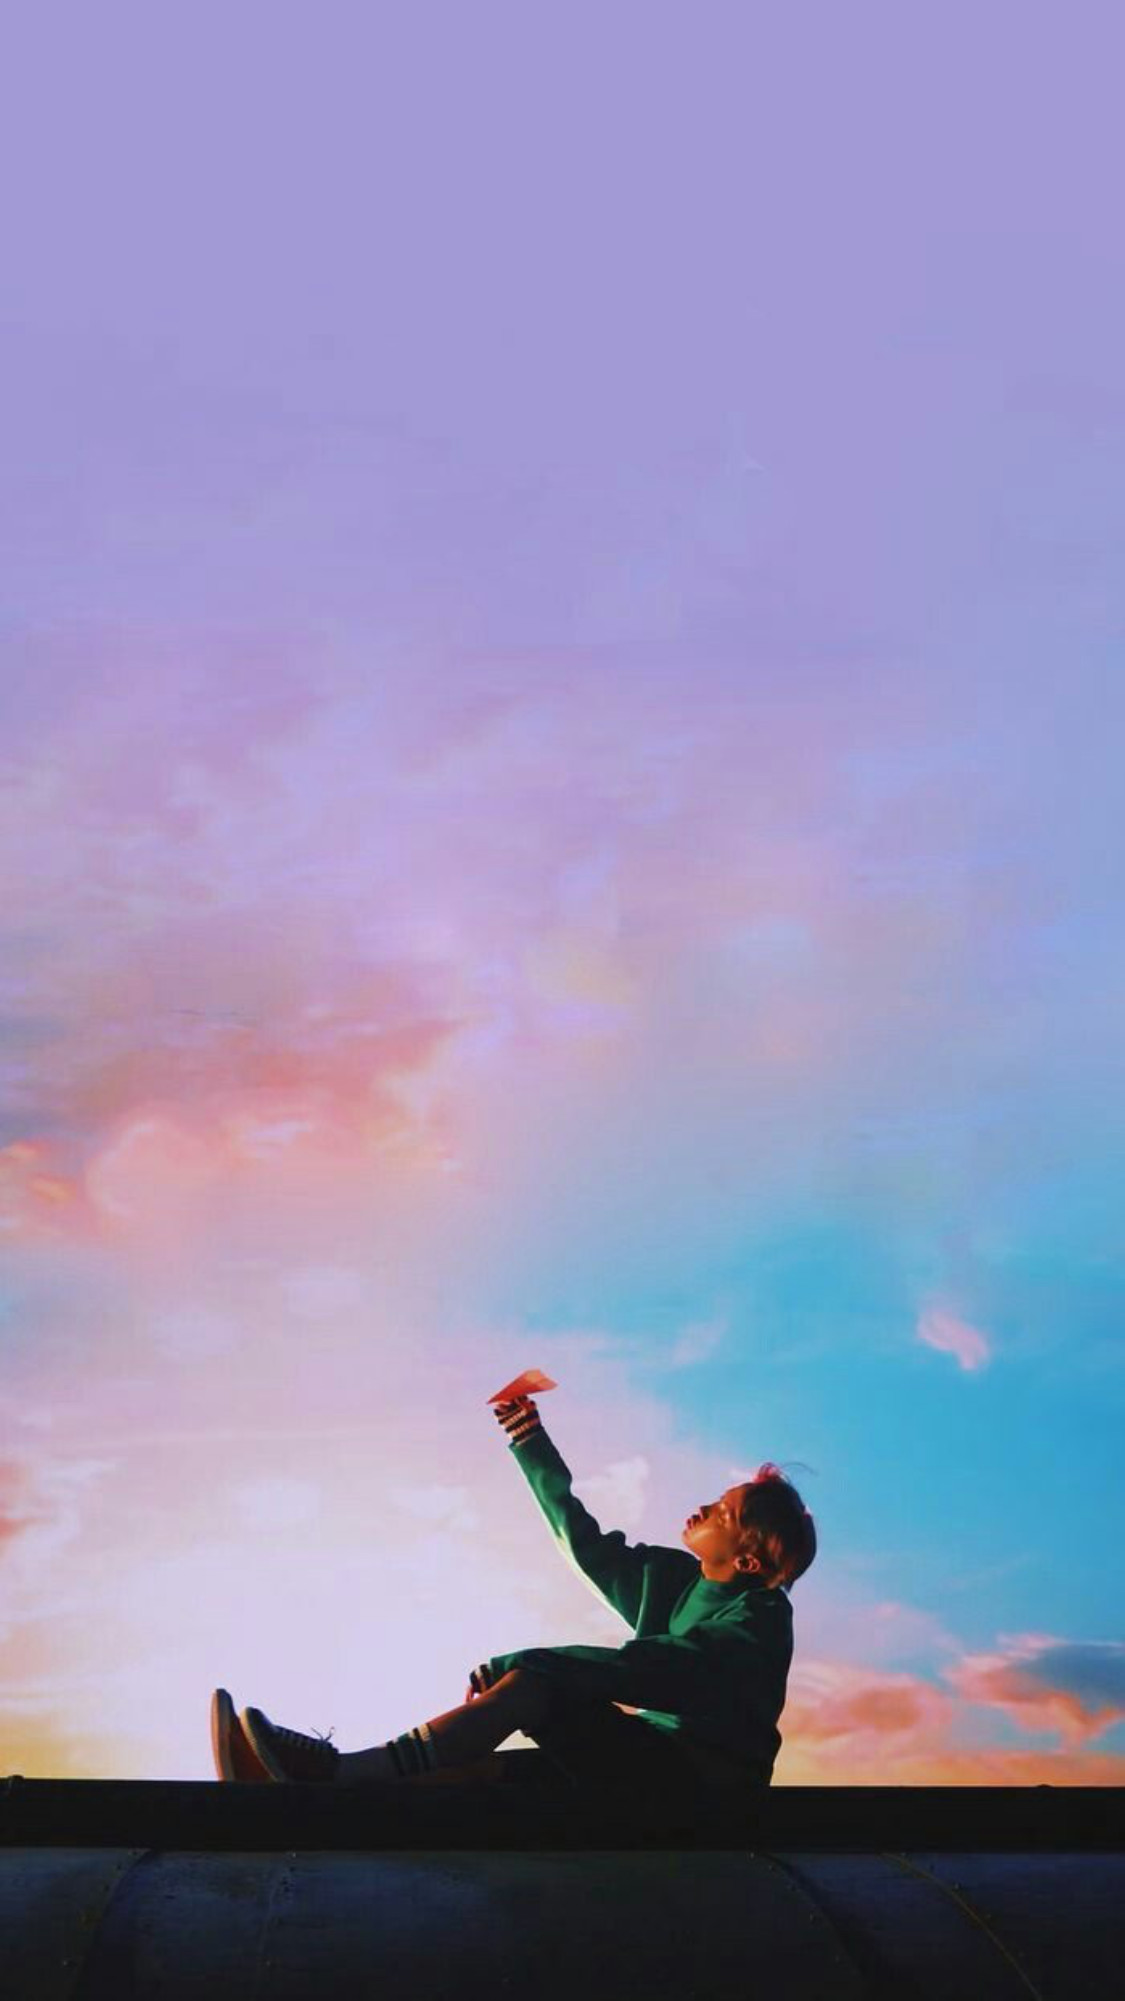 Aesthetic Bts Wallpaper 732885 Bts Jhope Spring Day Free